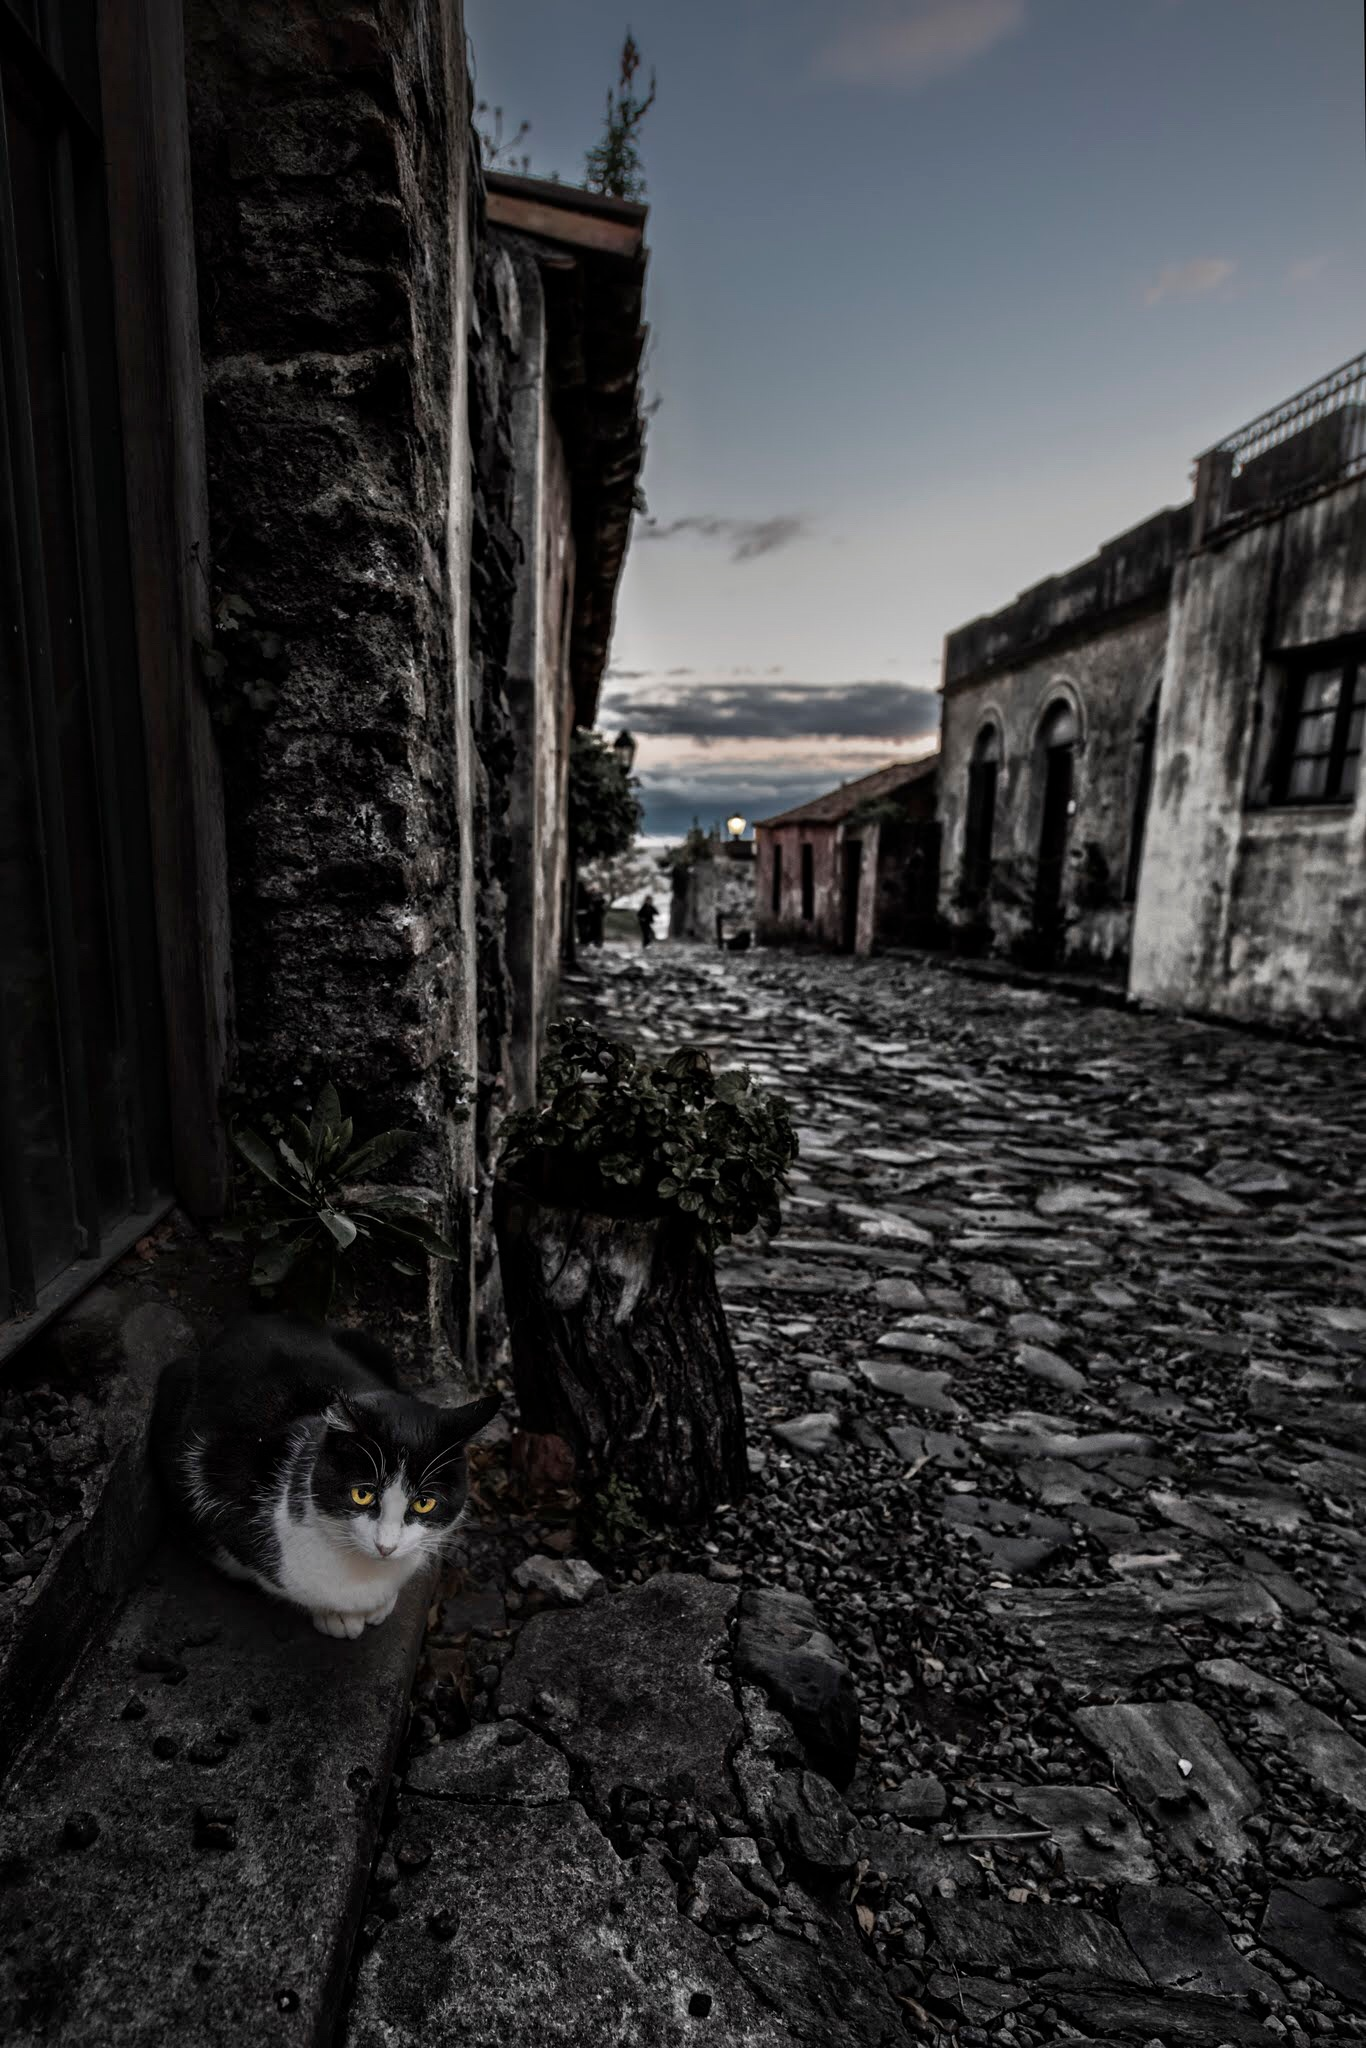 Cat by Xime Cesaratto